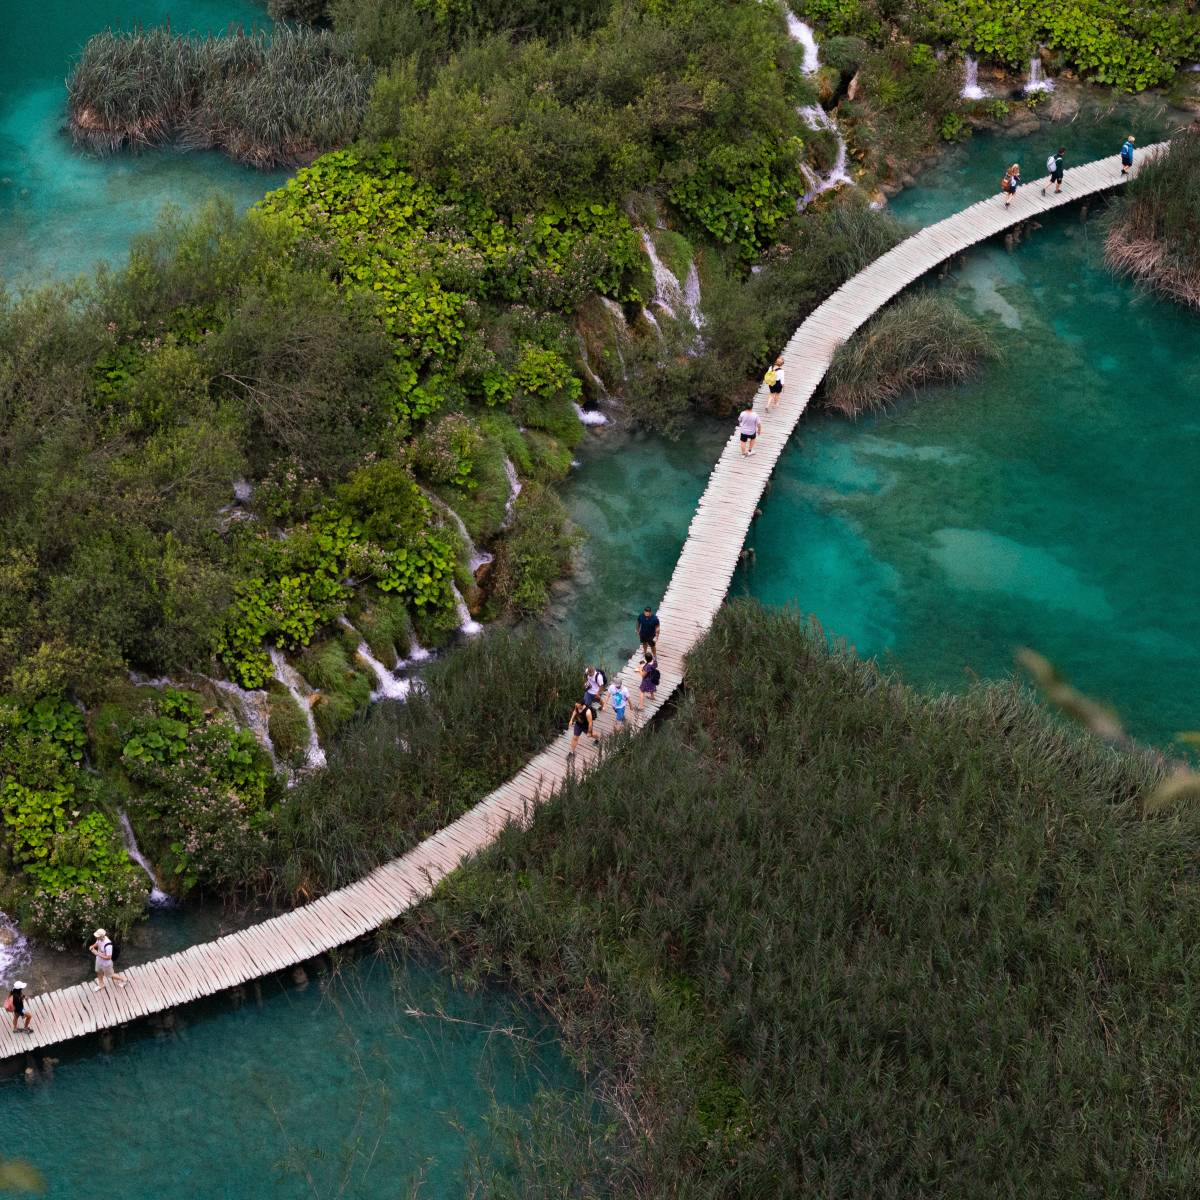 A walkway in the Plitvice Lakes National Park in Croatia.